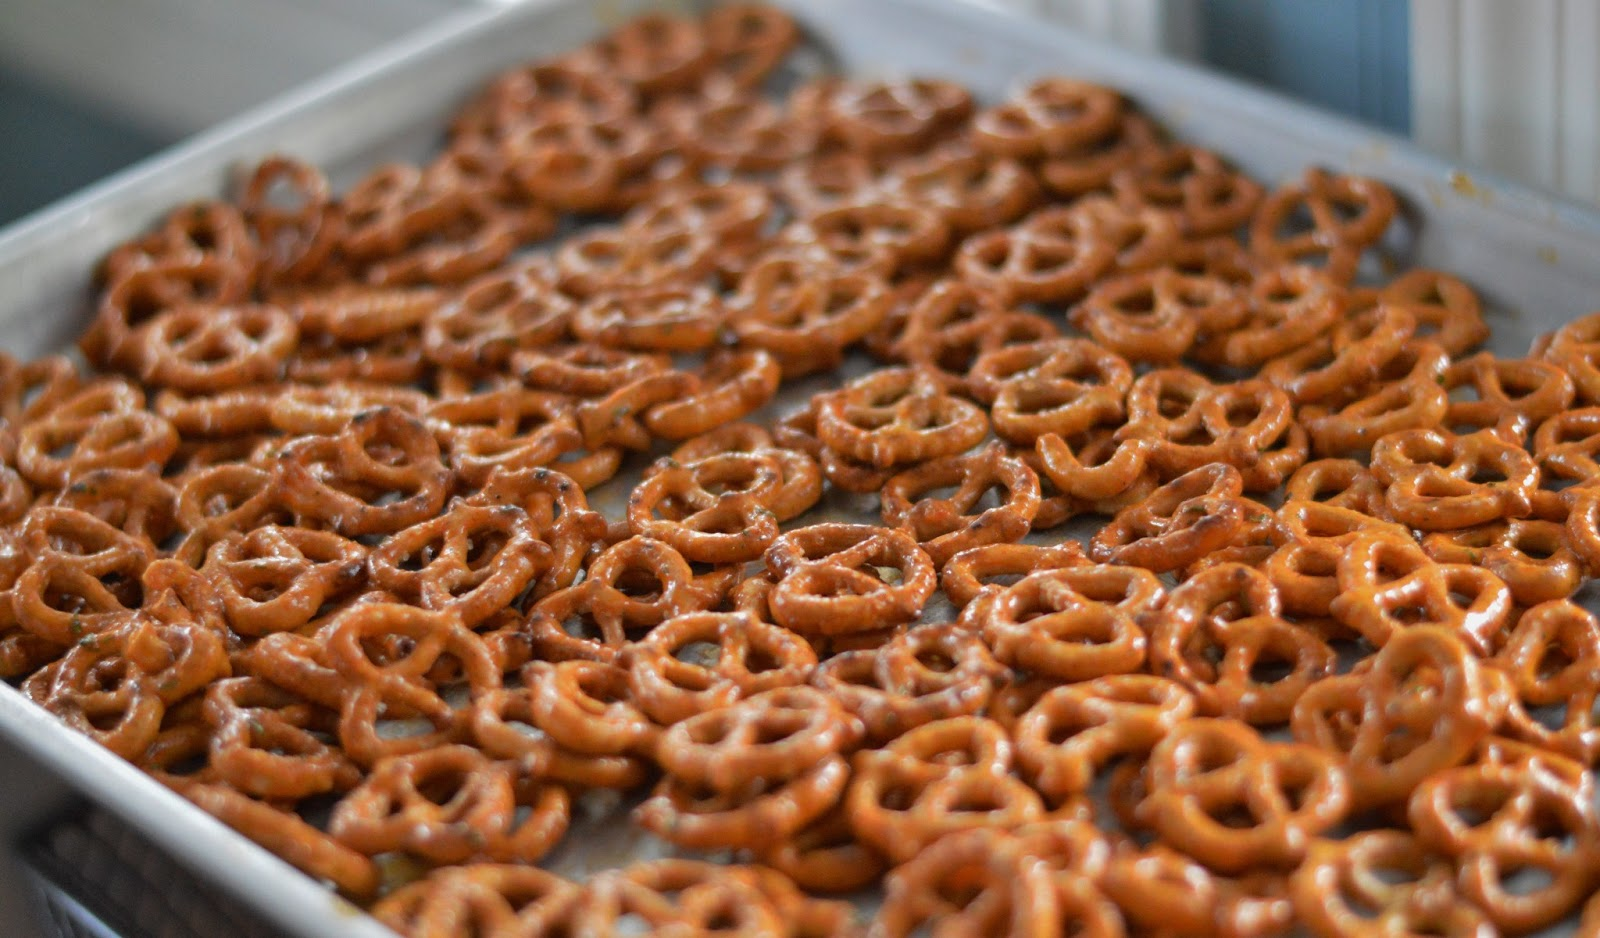 Spread the coated pretzels onto a baking sheet and bake for an hour ...